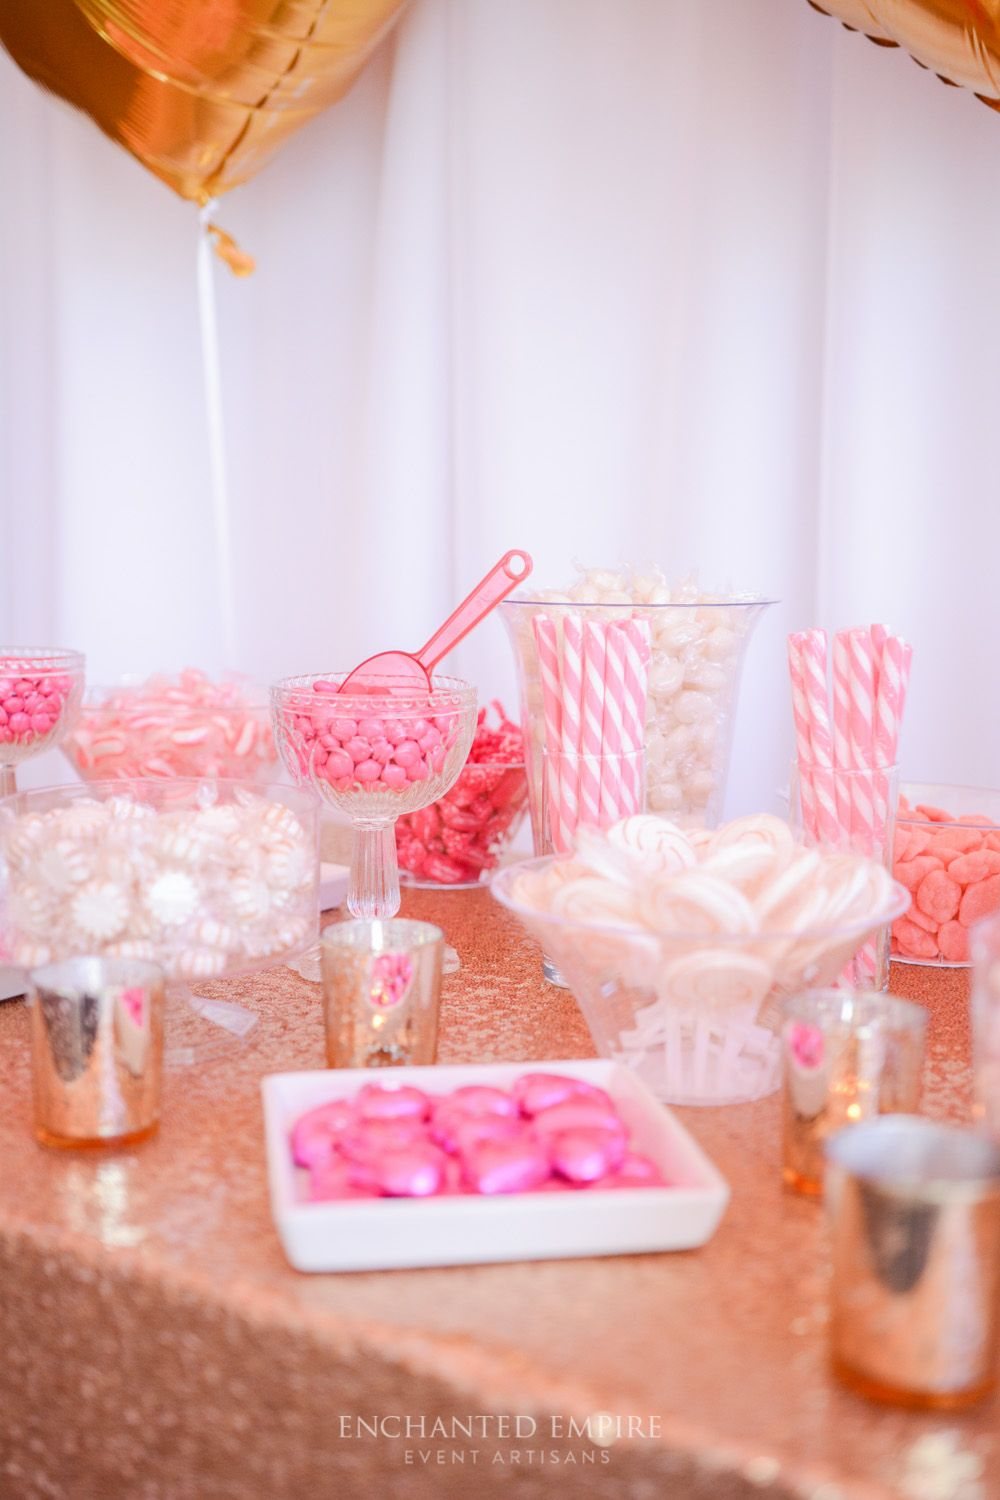 Pink and maroon wedding decor  This wedding decor was simple and chic White tablecloths with gold